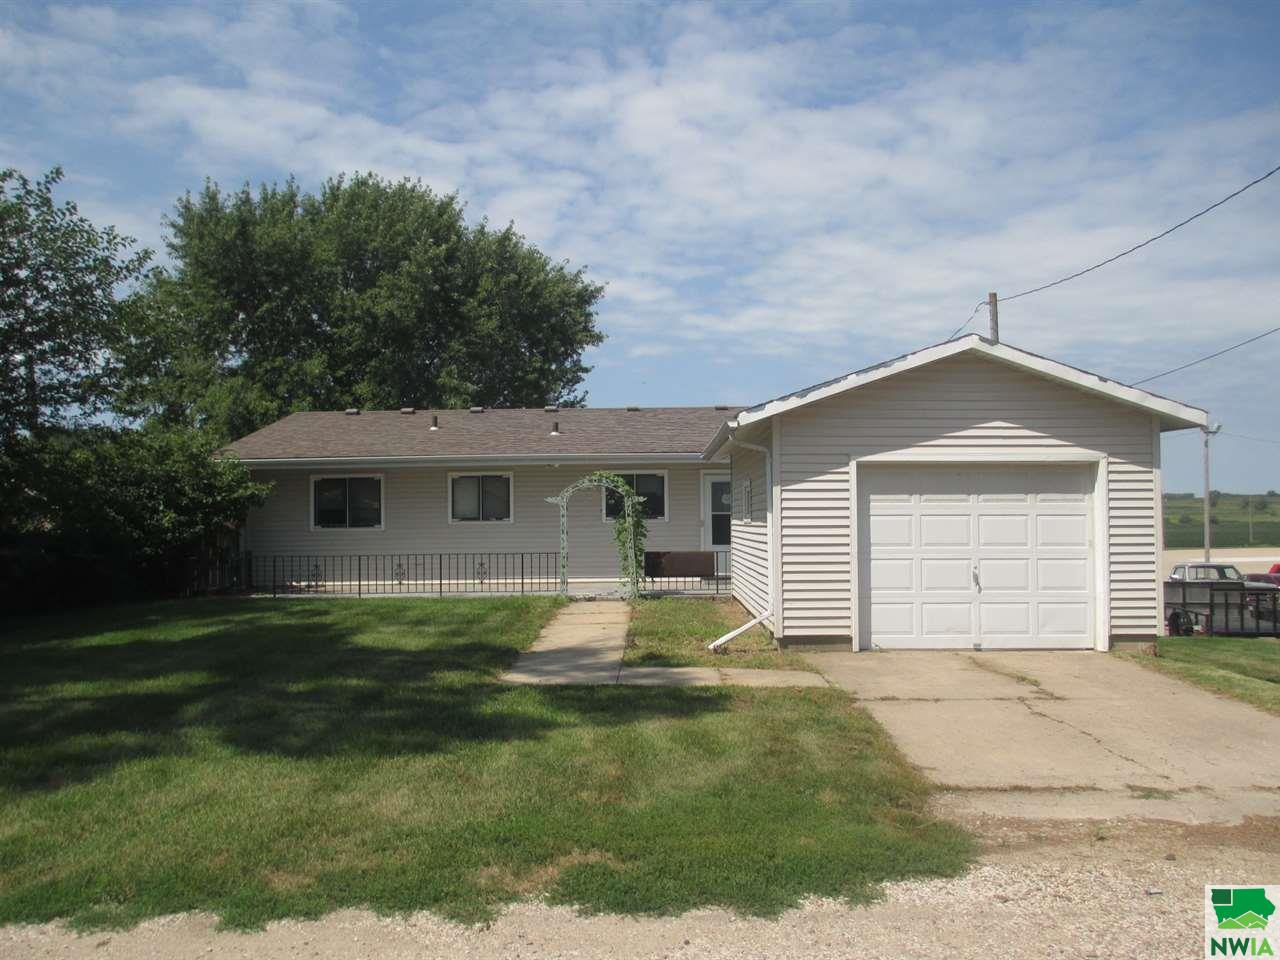 Property for sale at 126 5th Ave Nw, Lemars,  Iowa 51031